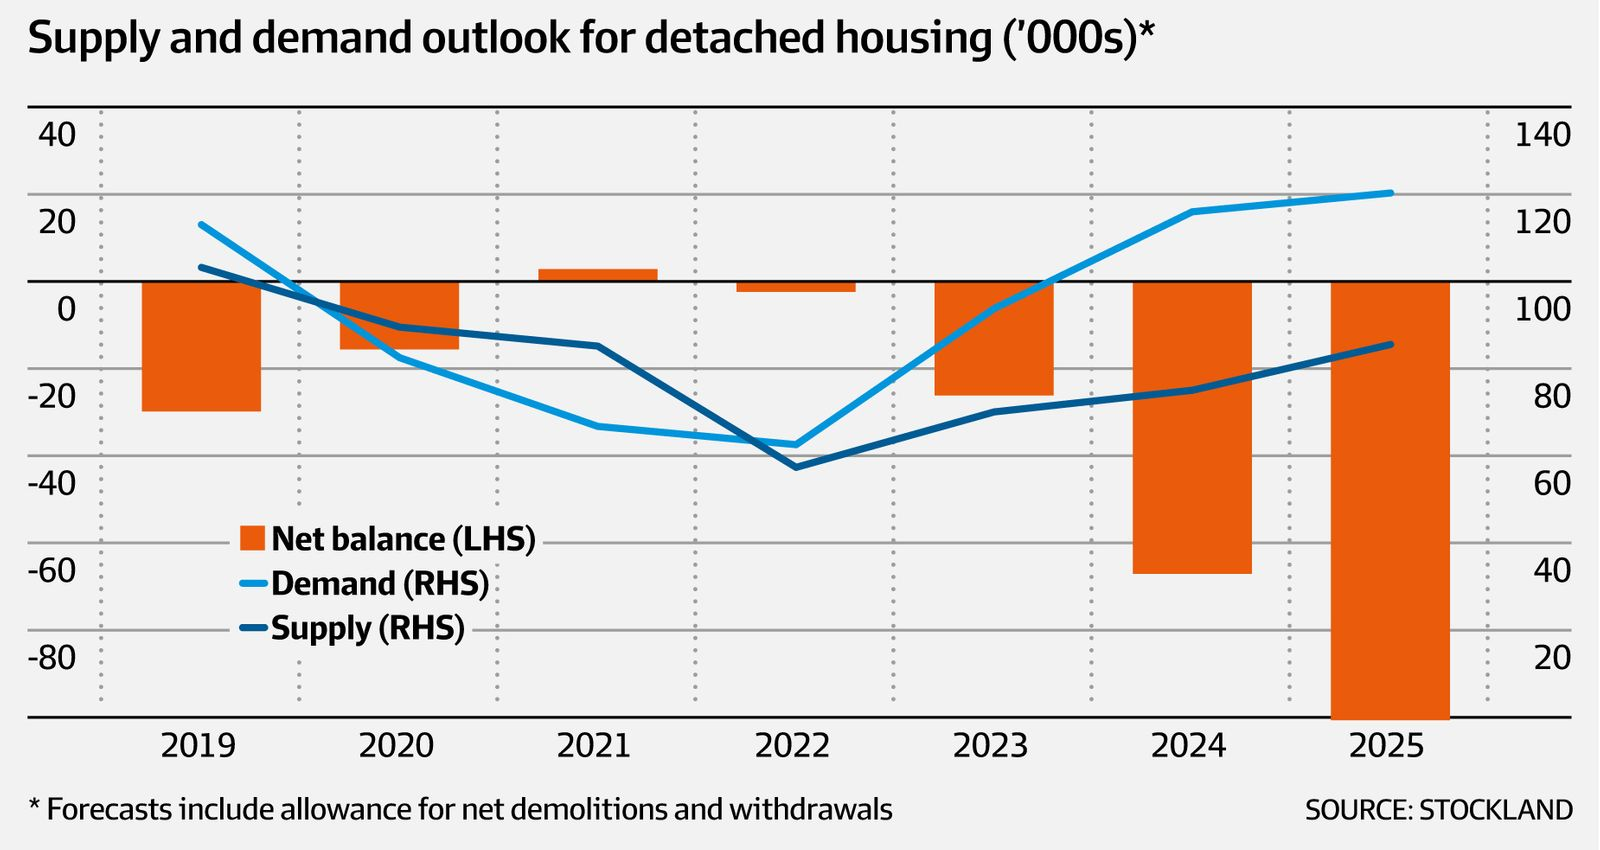 Supply and Demand Outlook for Detached Housing